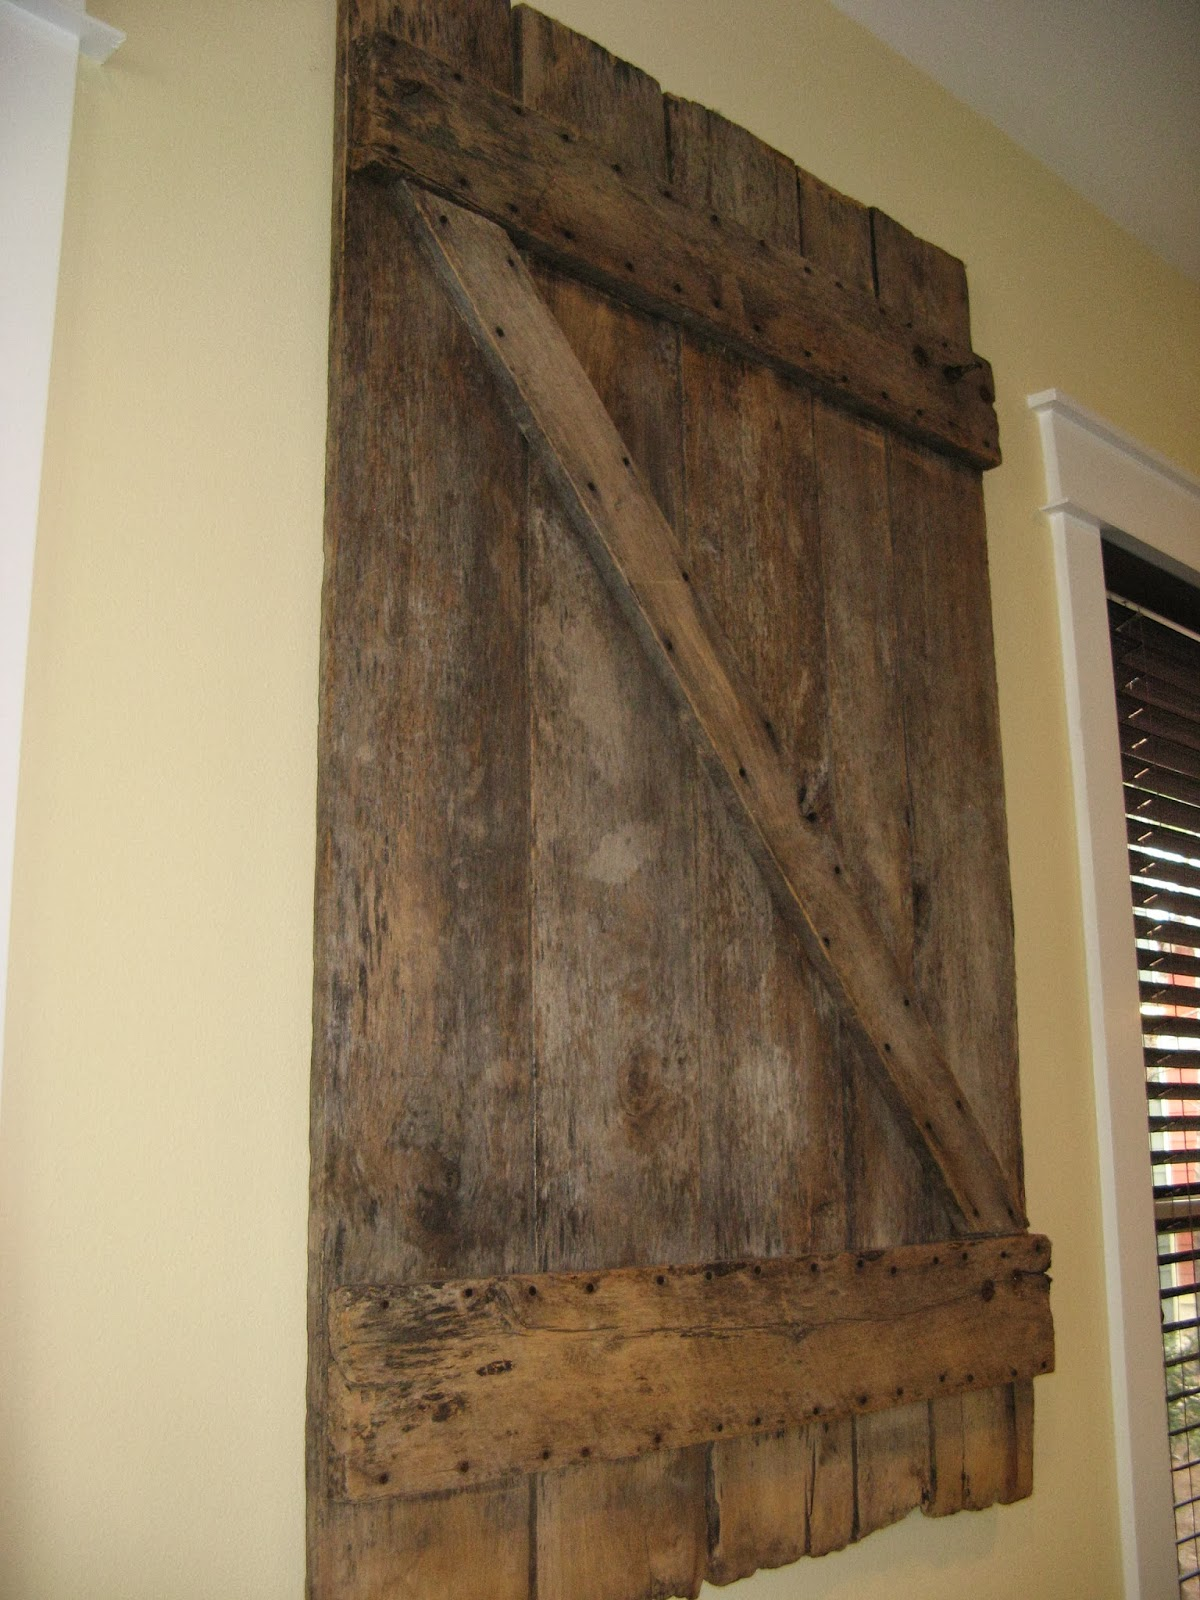 Susan Snyder: BARN DOOR WALL ART